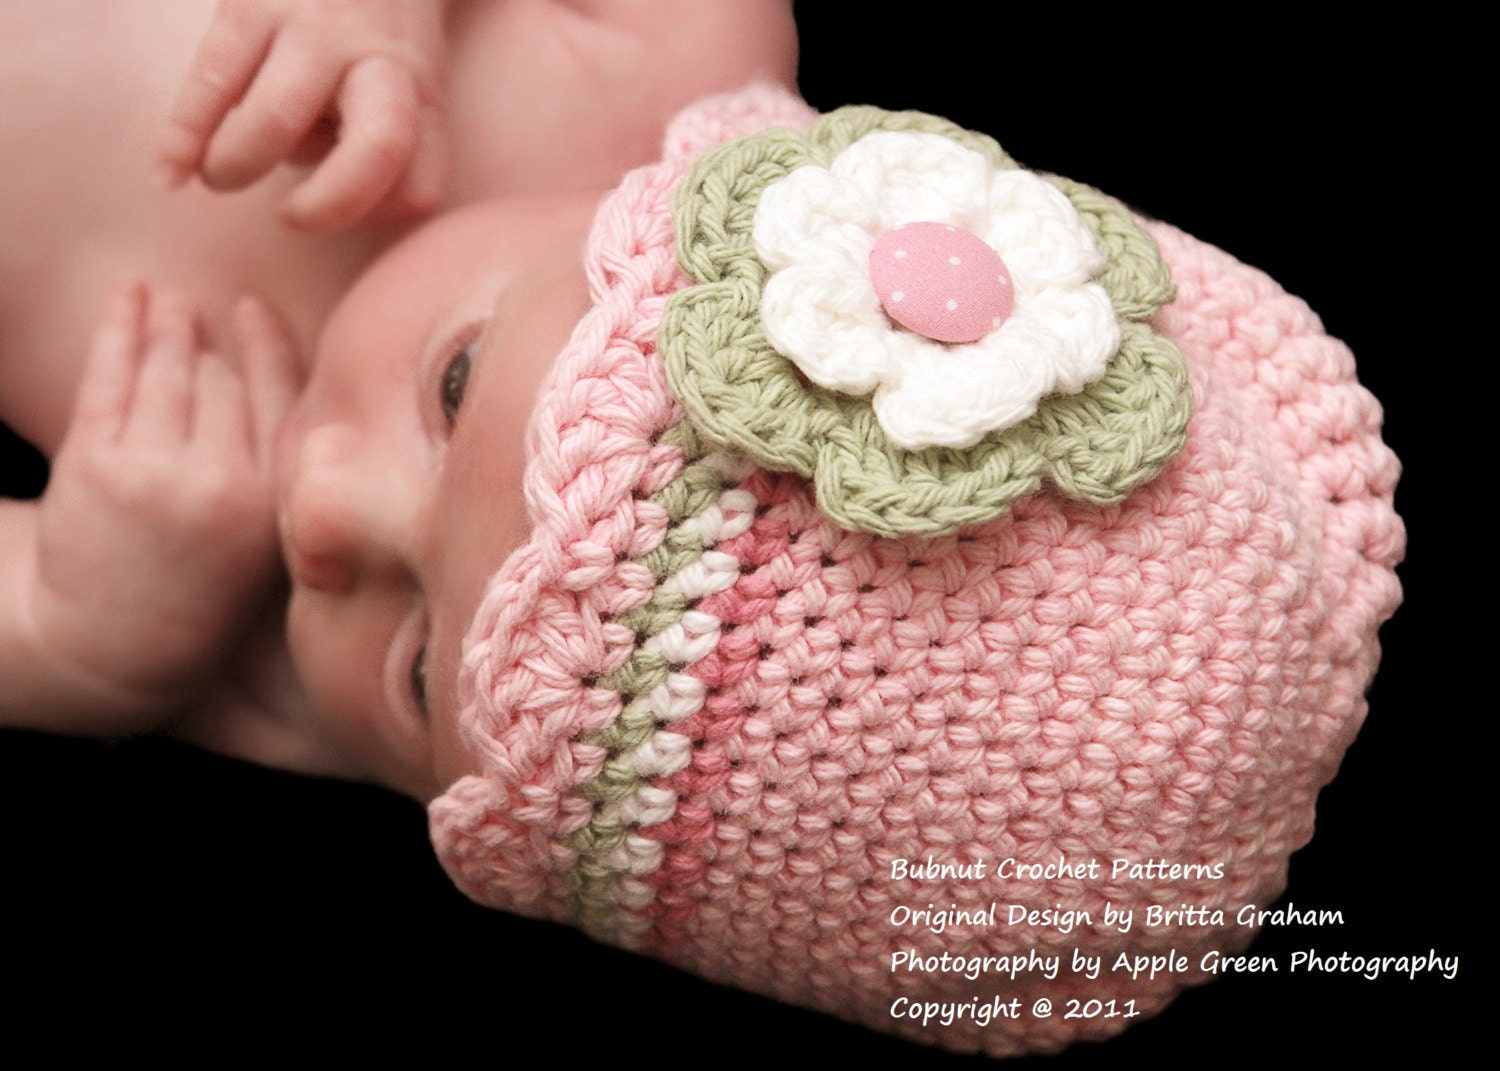 Crochet Patterns Of Baby Hats : Baby Hat Crochet Pattern with Shell Trim Crochet Hat Pattern